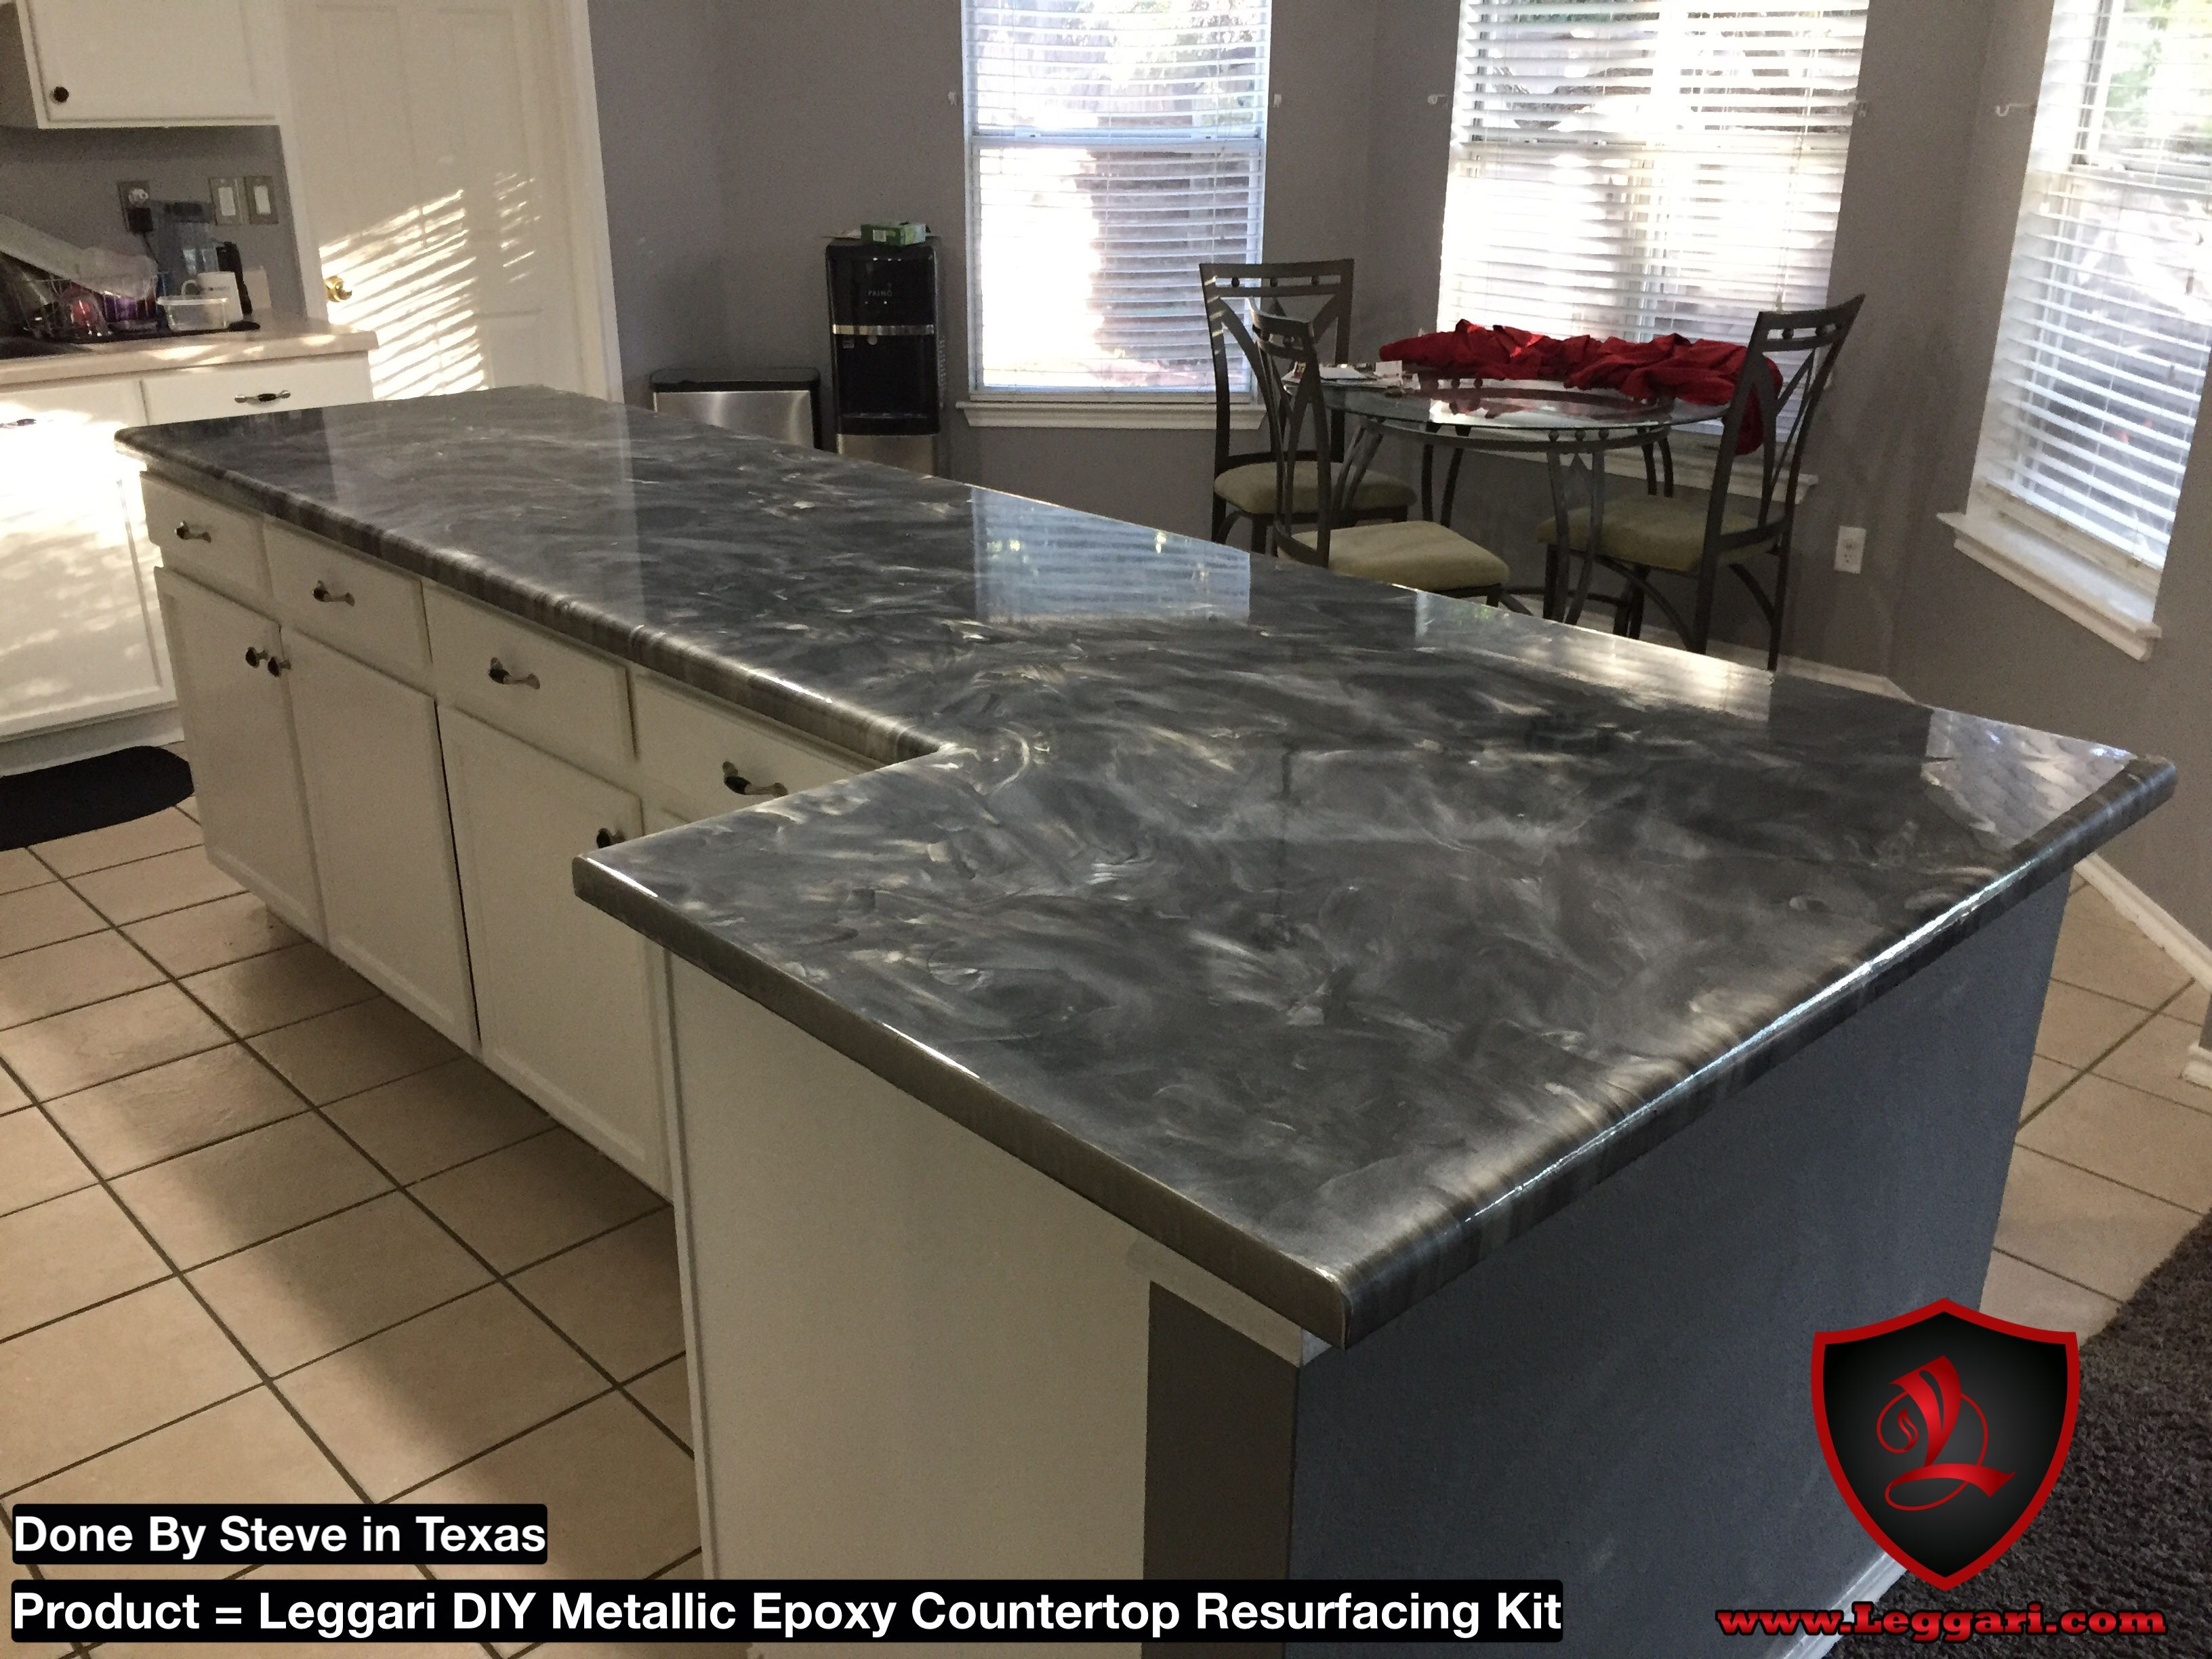 Get Your Kit Today And #coat Something! #countertops #diy #metallic #